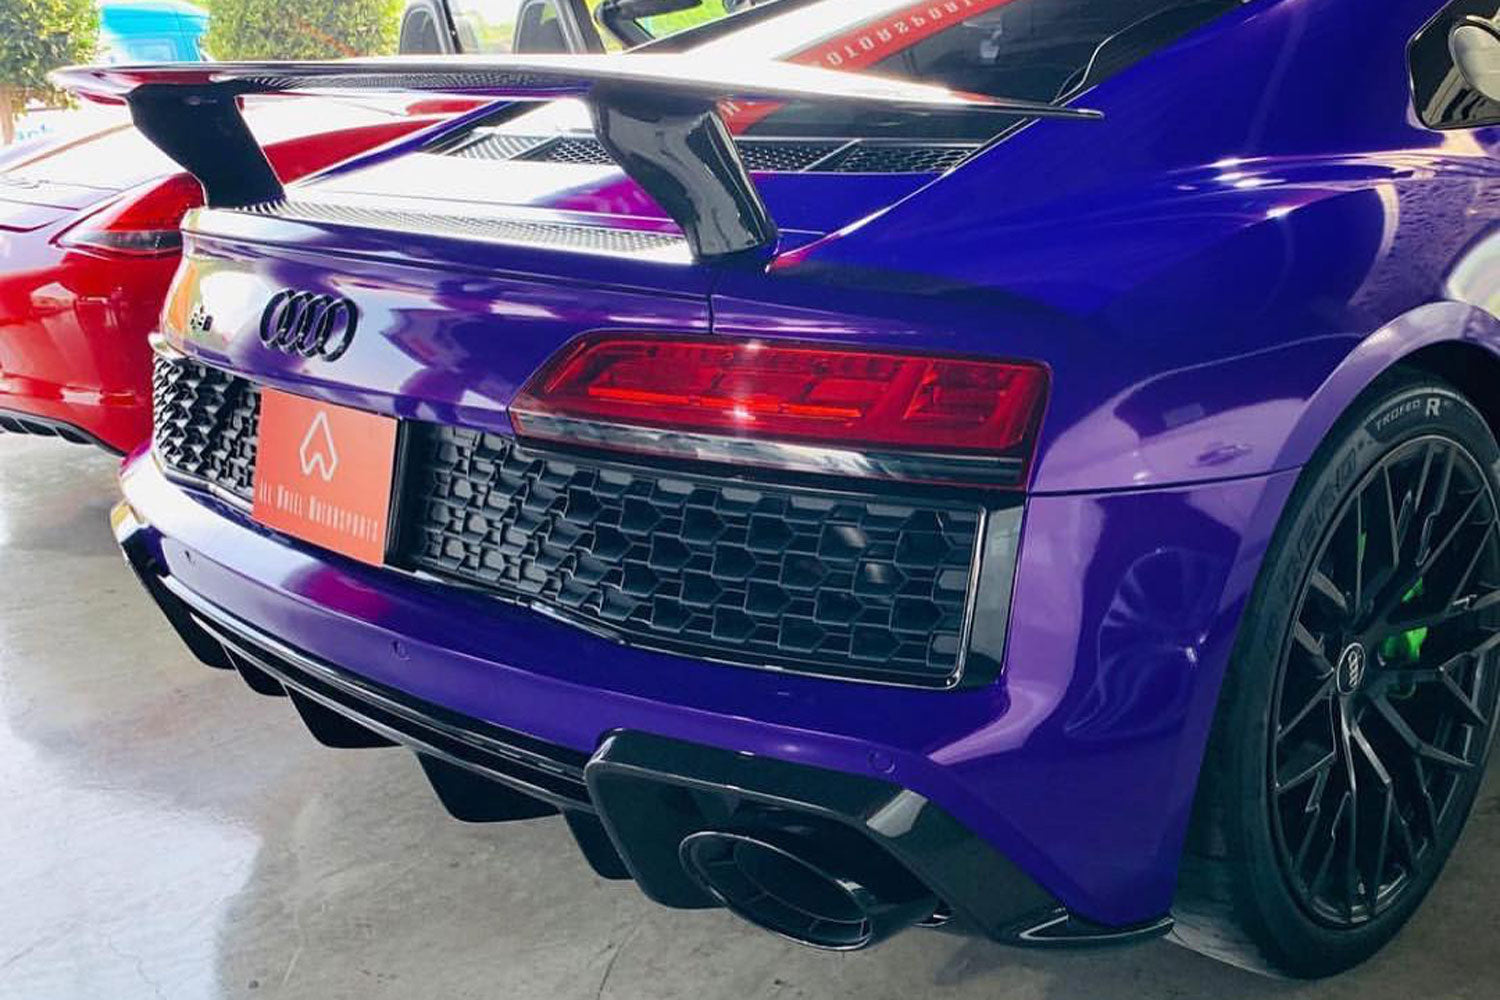 Audi R8 V10 Without Gpfs Active Titan Sport Exhaust 2020 On Usa Row Quicksilver Exhausts